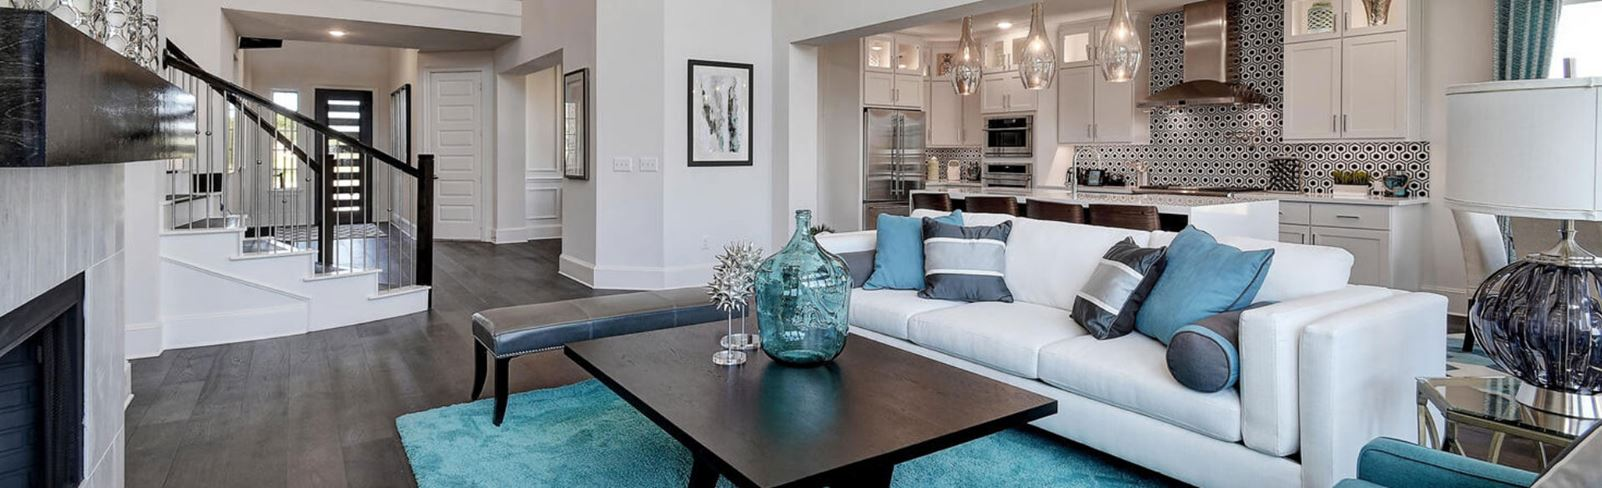 Westin Model Home in Sweetwater Community Austin, TX